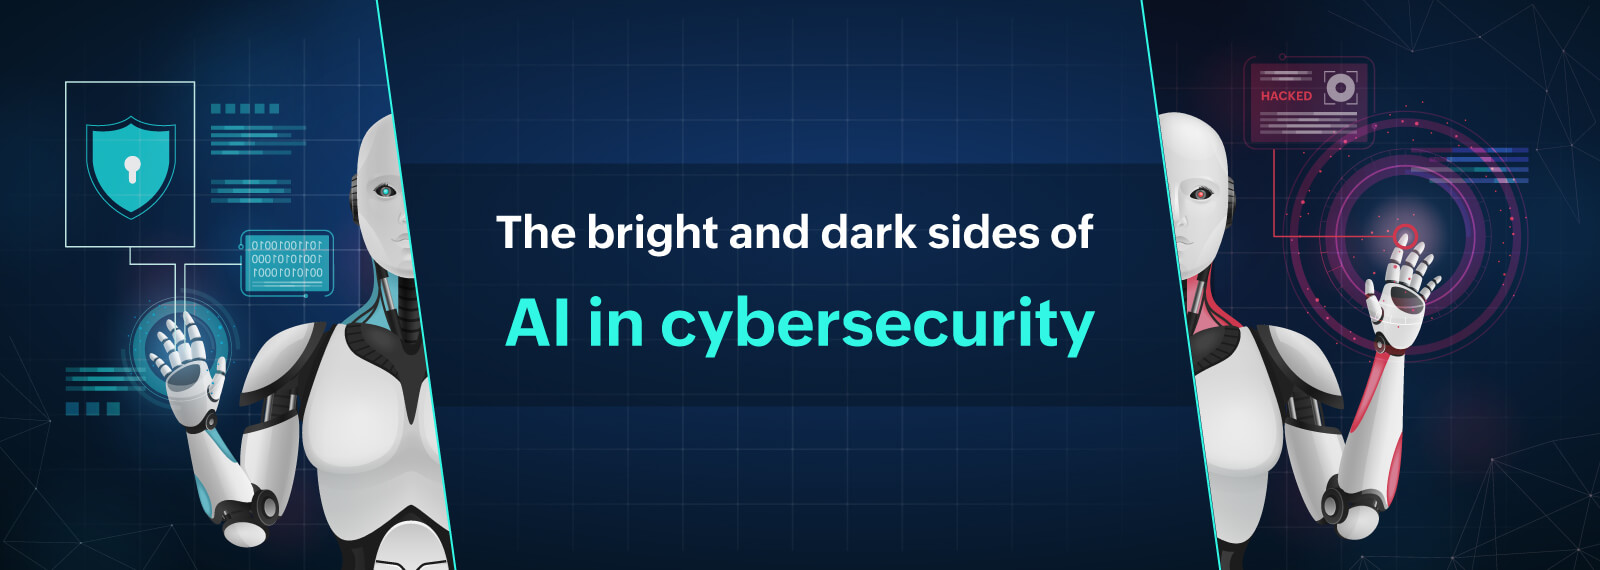 The bright and dark sides of AI in cybersecurity